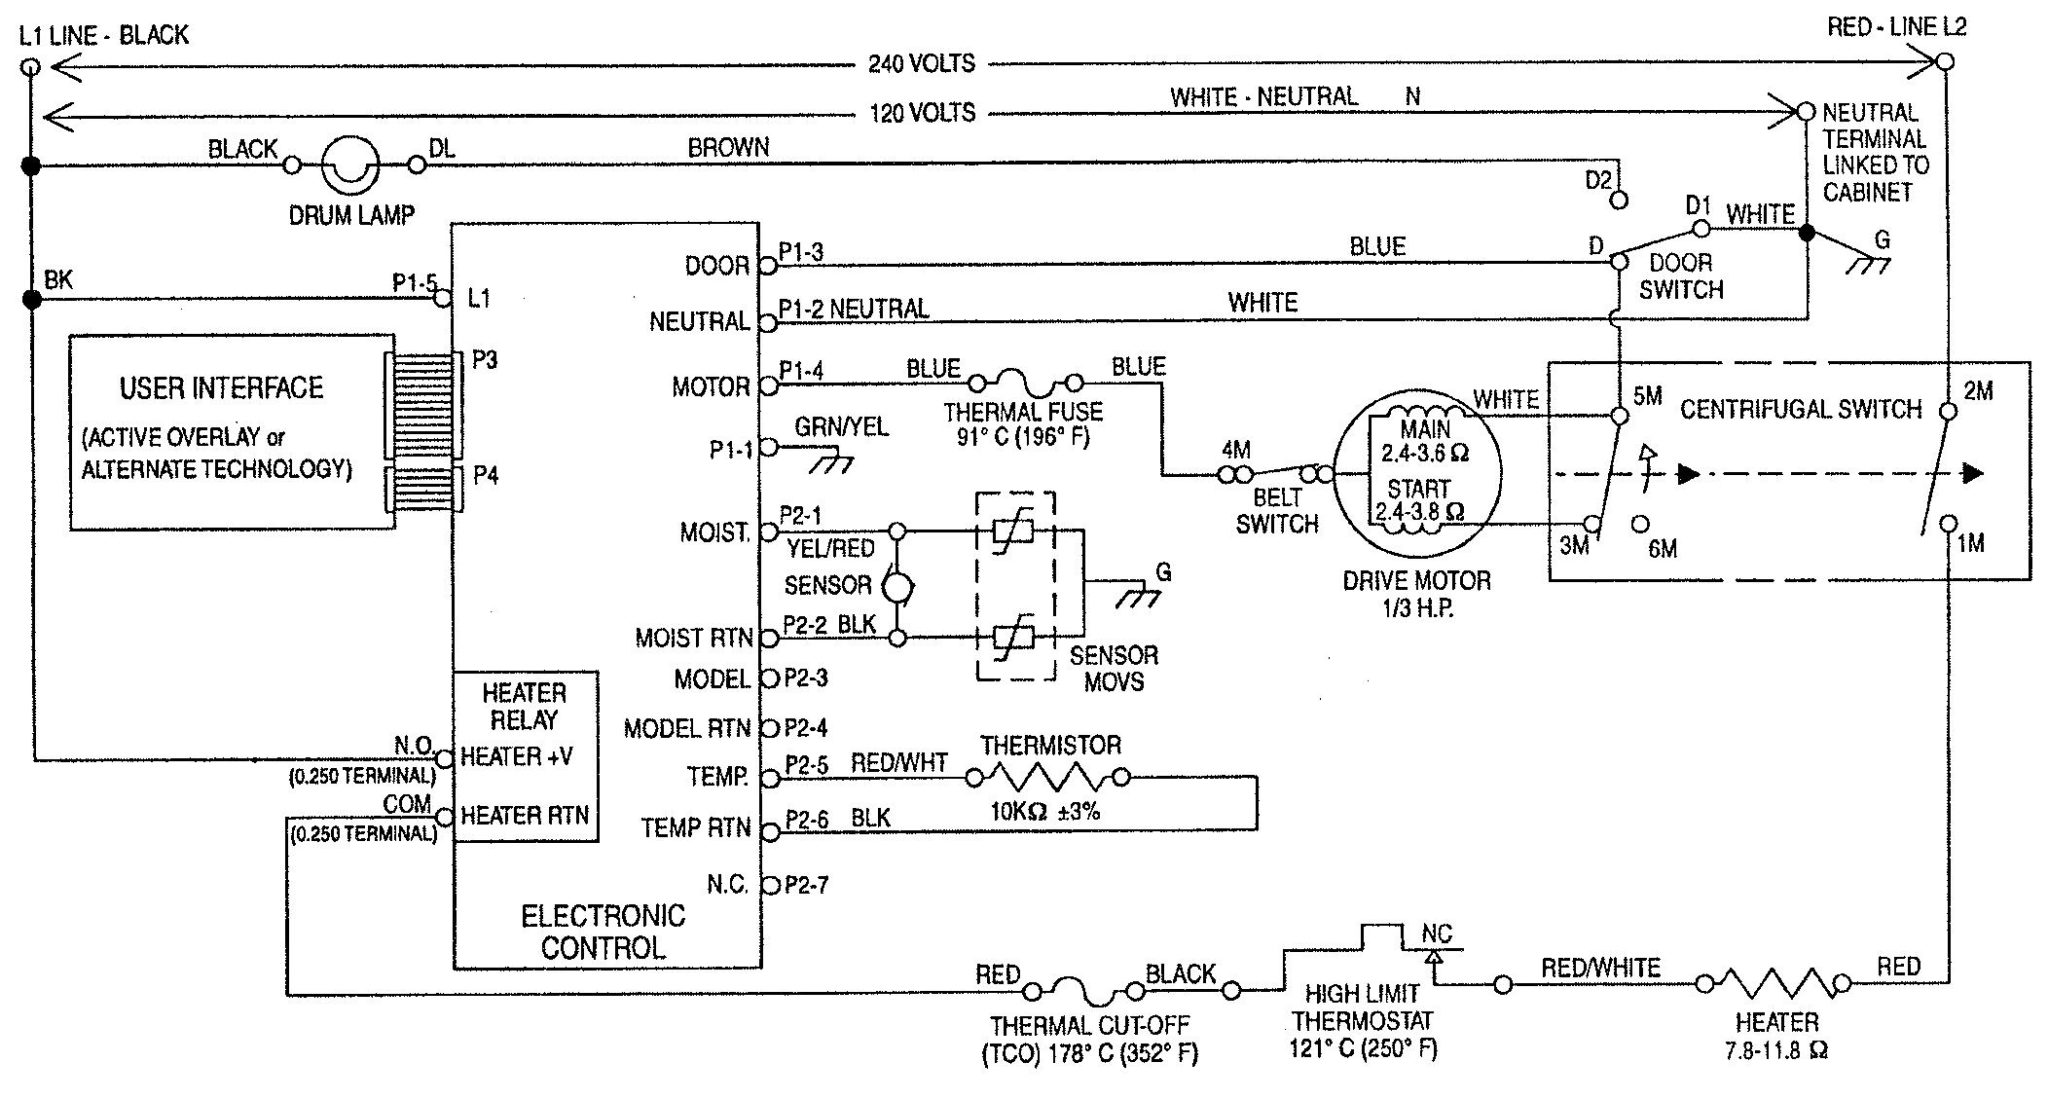 Appliance Course Module Five Figure 5 80 mat course module five sample page spin dryer motor wiring diagram at panicattacktreatment.co